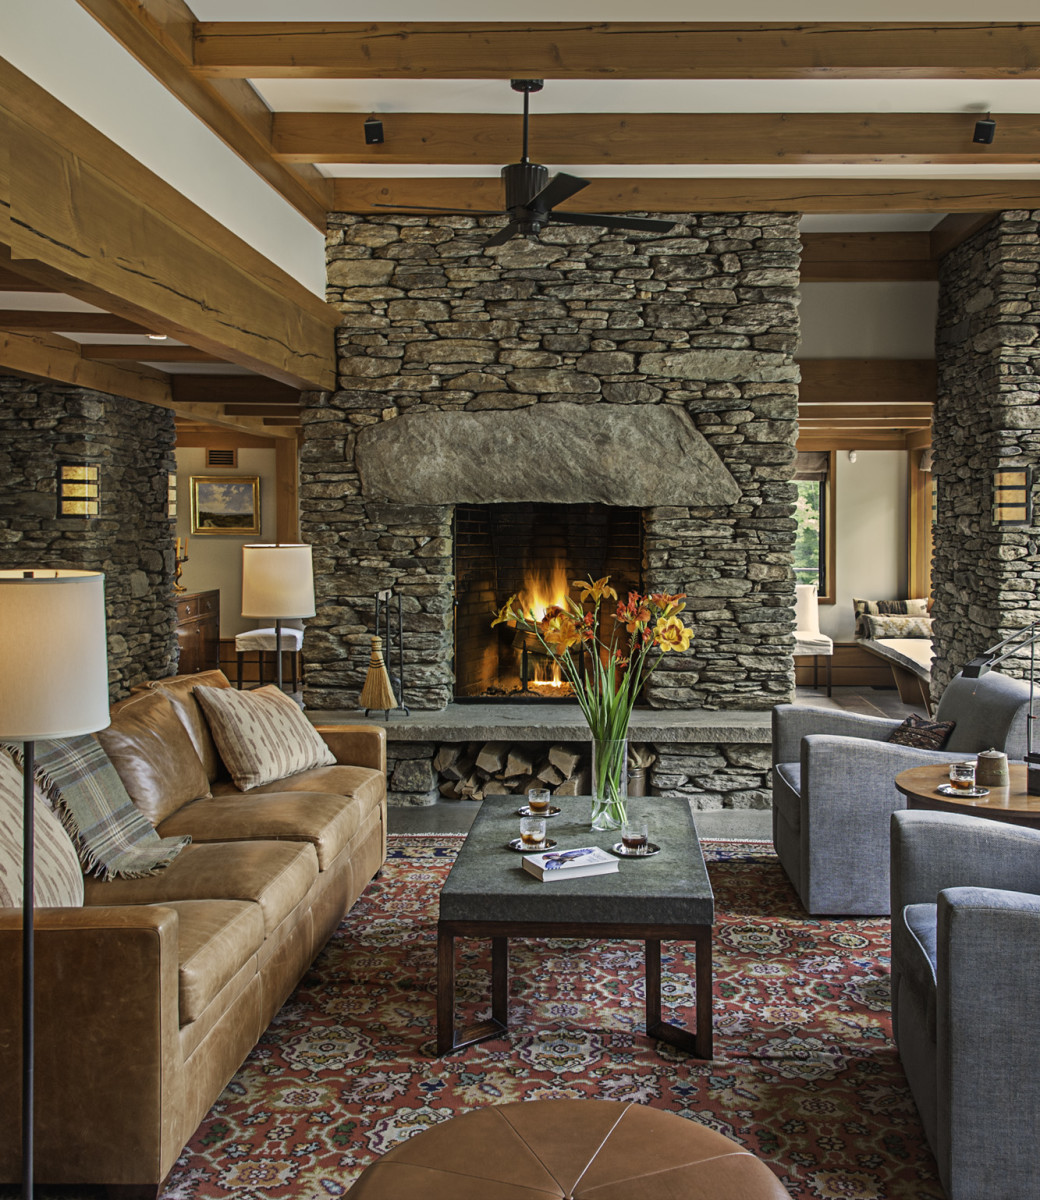 Living Room With Fireplace And Sliding Doors: Arts & Crafts Homes And The Revival